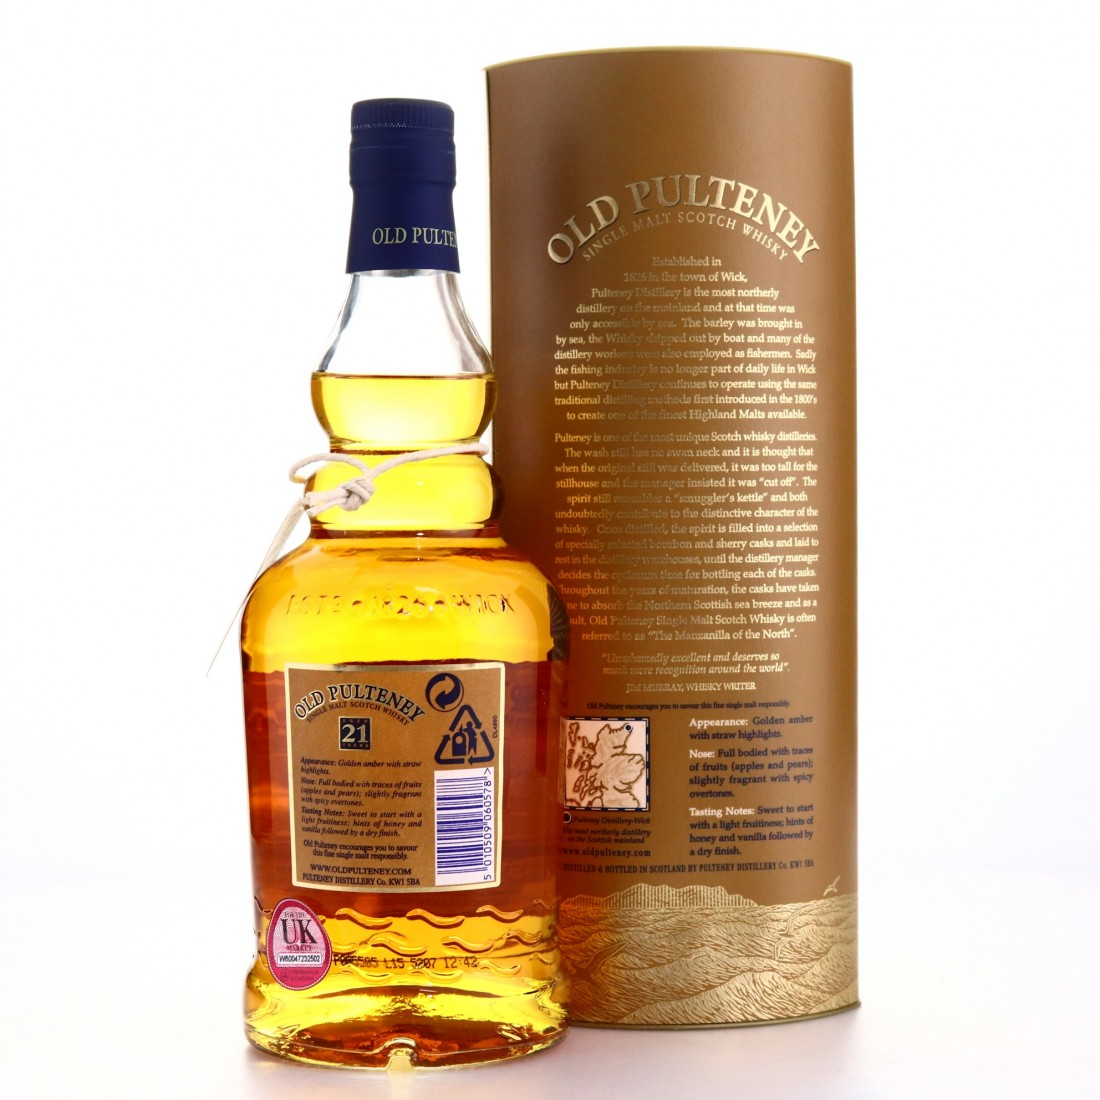 Old Pulteney 1983 Limited Edition 21 Year Old